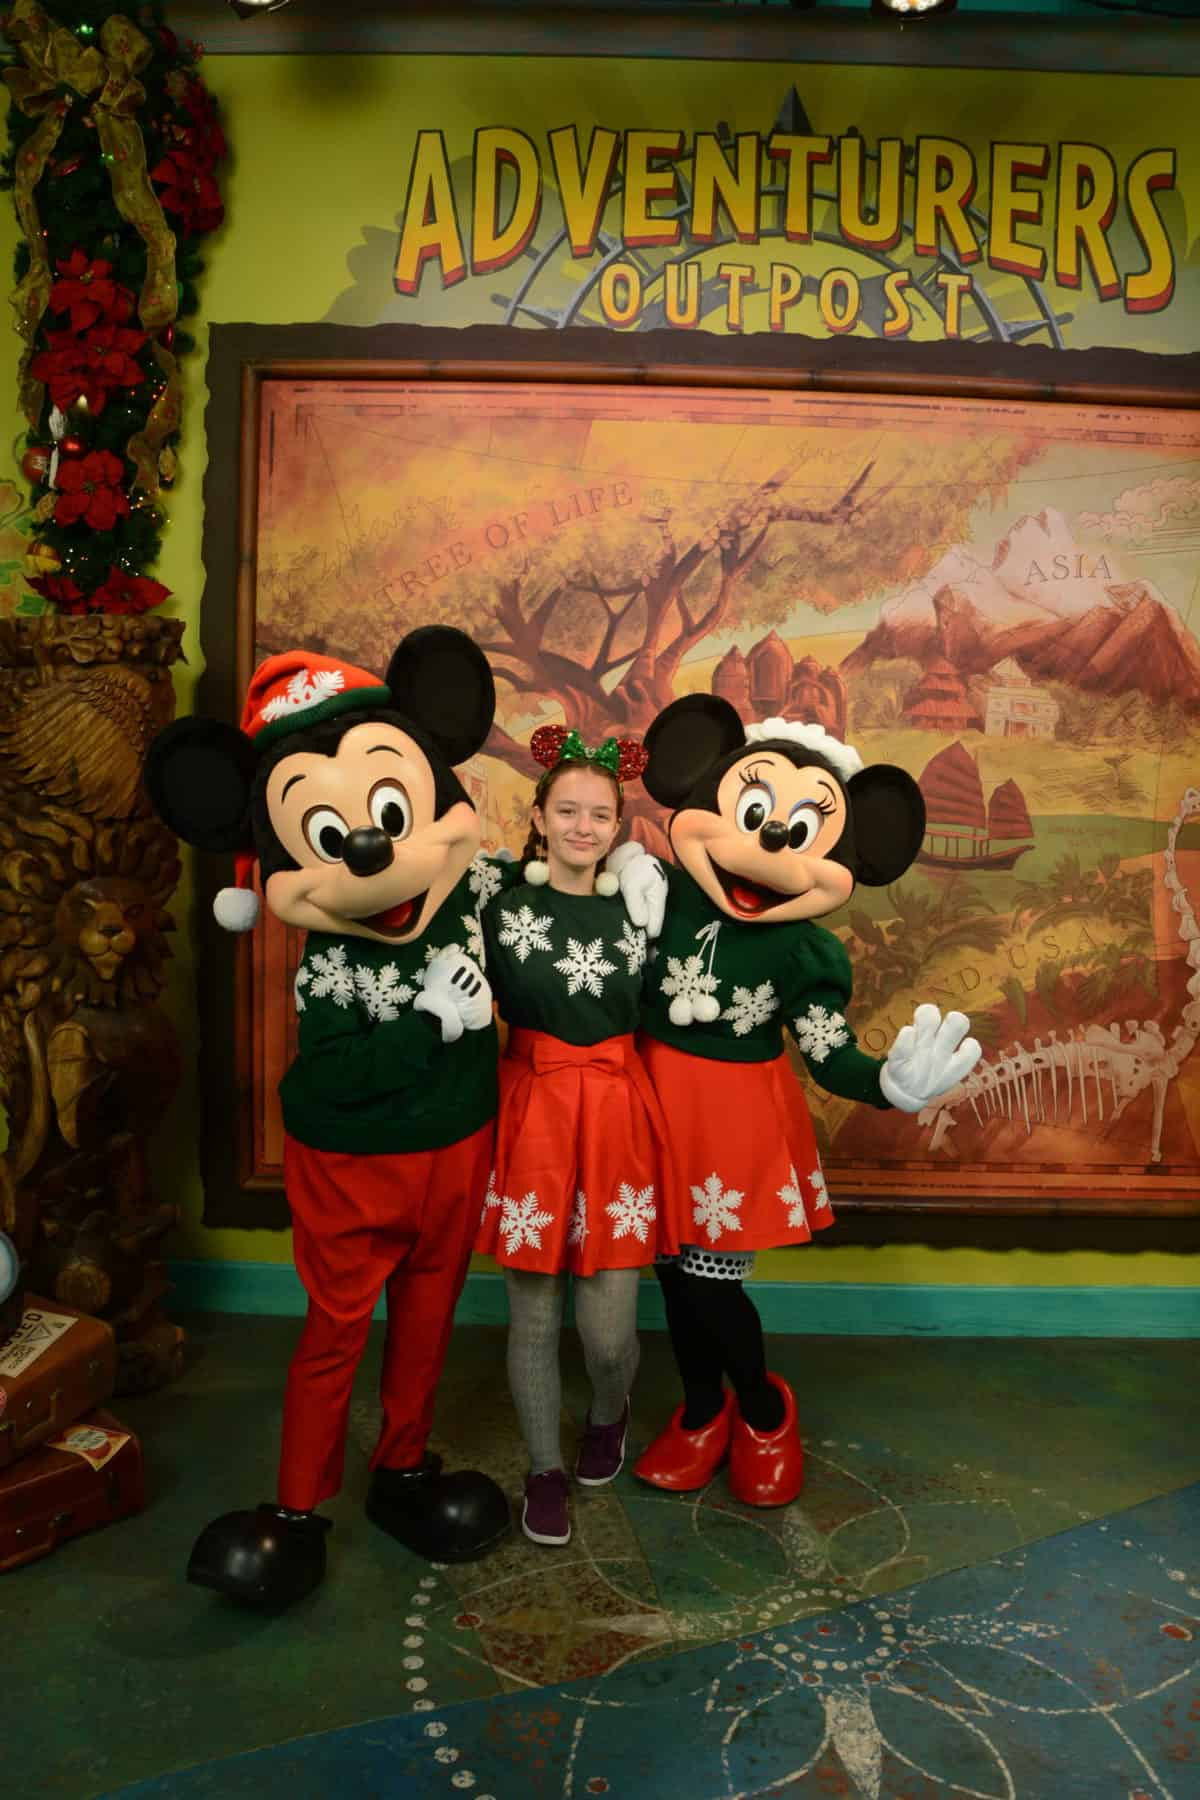 Mickey and Minnie's Christmas Sweater DIY Holiday Template and Instructions